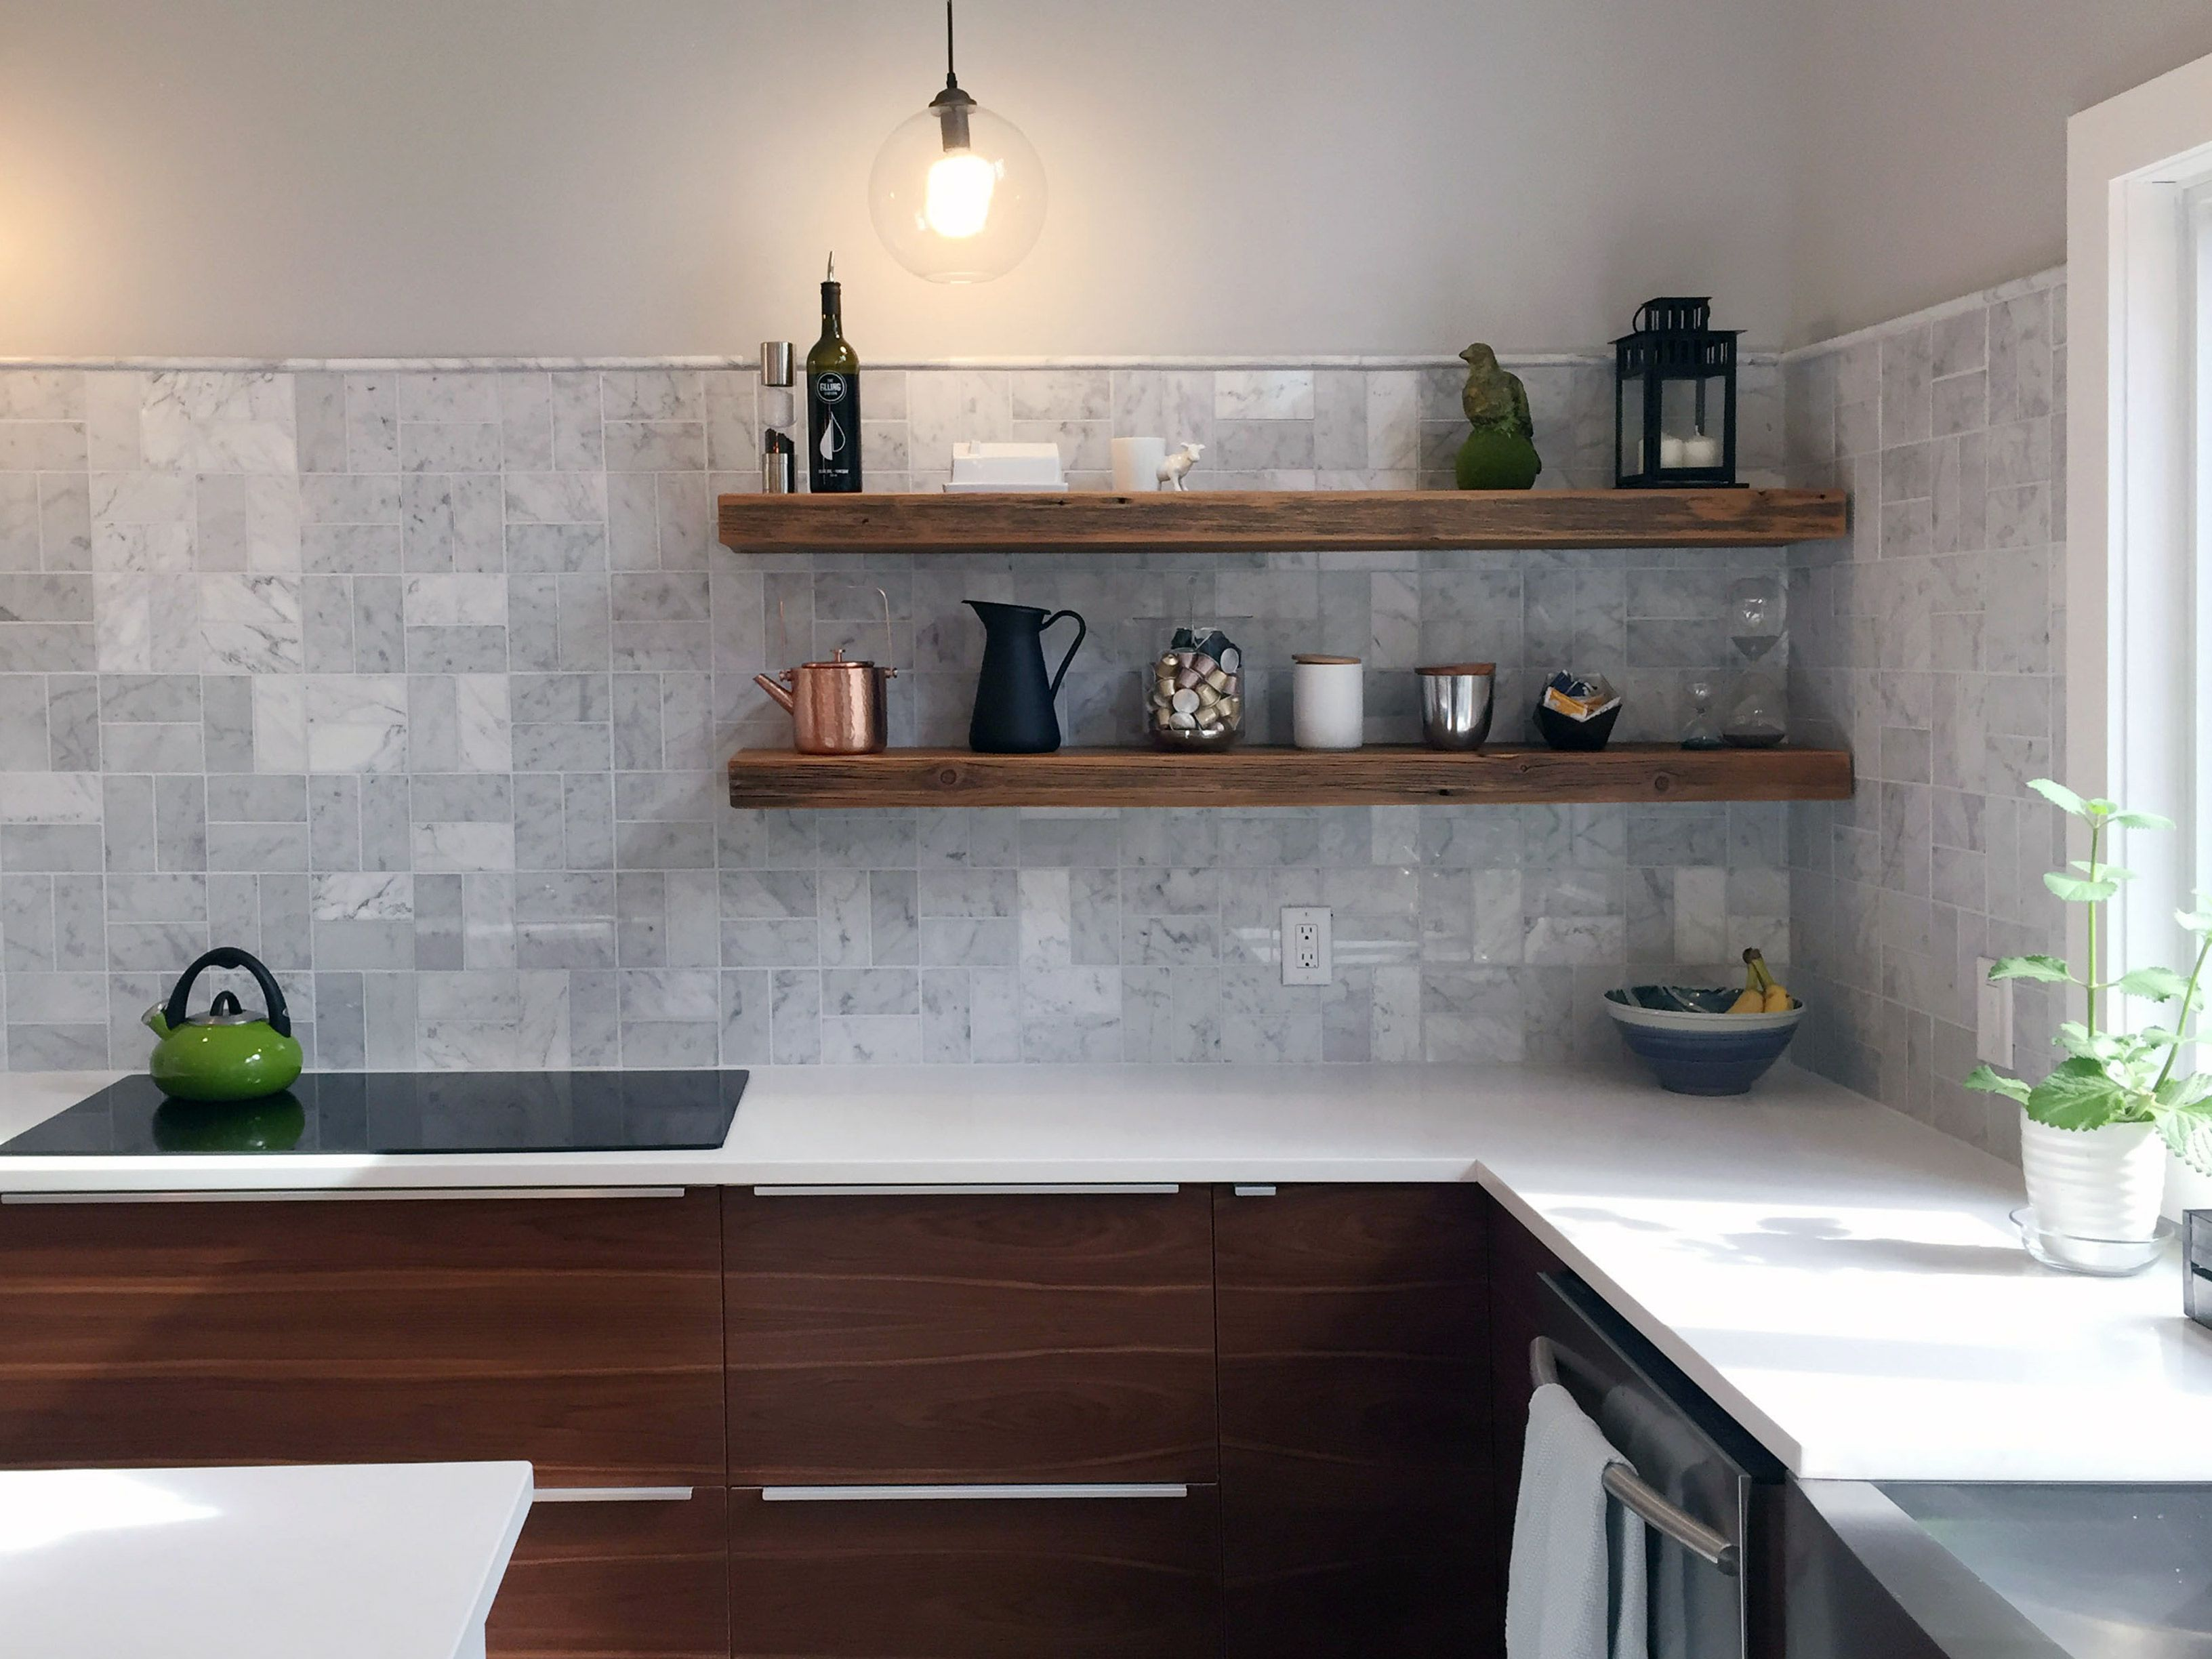 Open Kitchen Shelving And The Flexibility That Comes With It: Hand Made Rustic Floating Shelves By Abodeacious